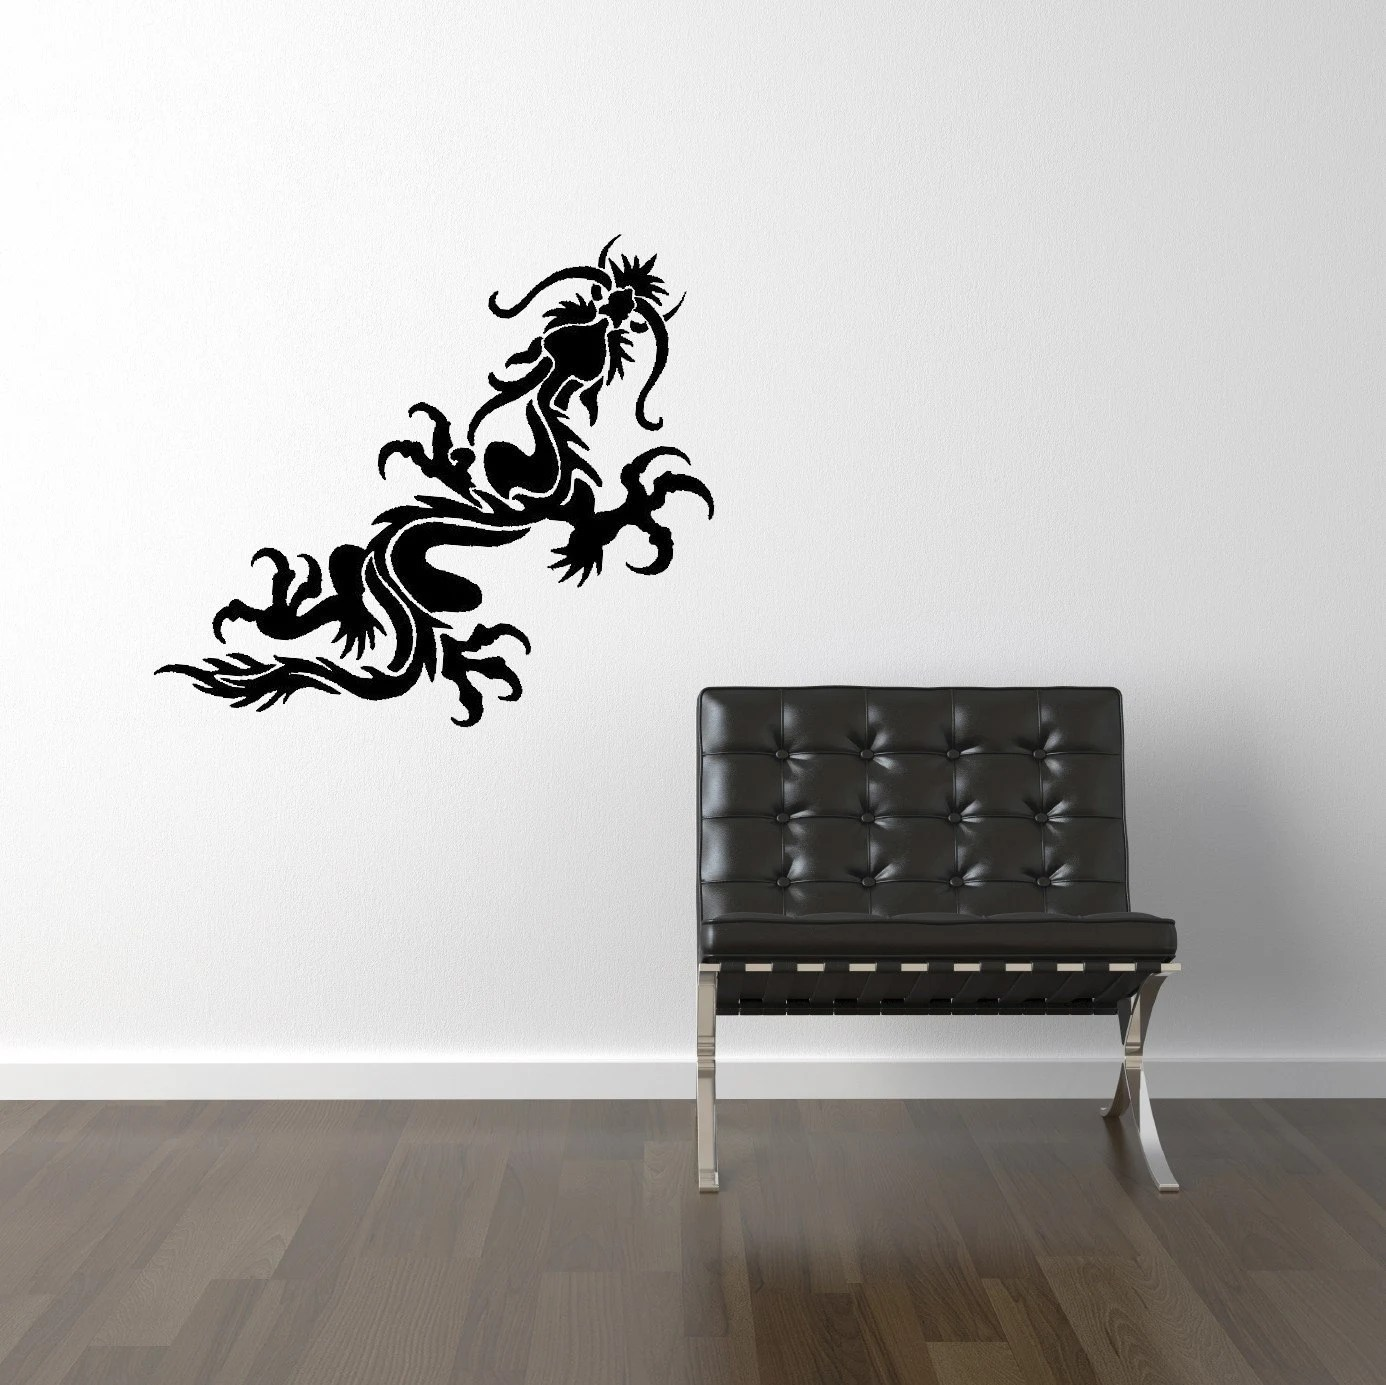 Vinyl Wall Decal Items Similar To Dragon Vinyl Wall Decal Decals Wall